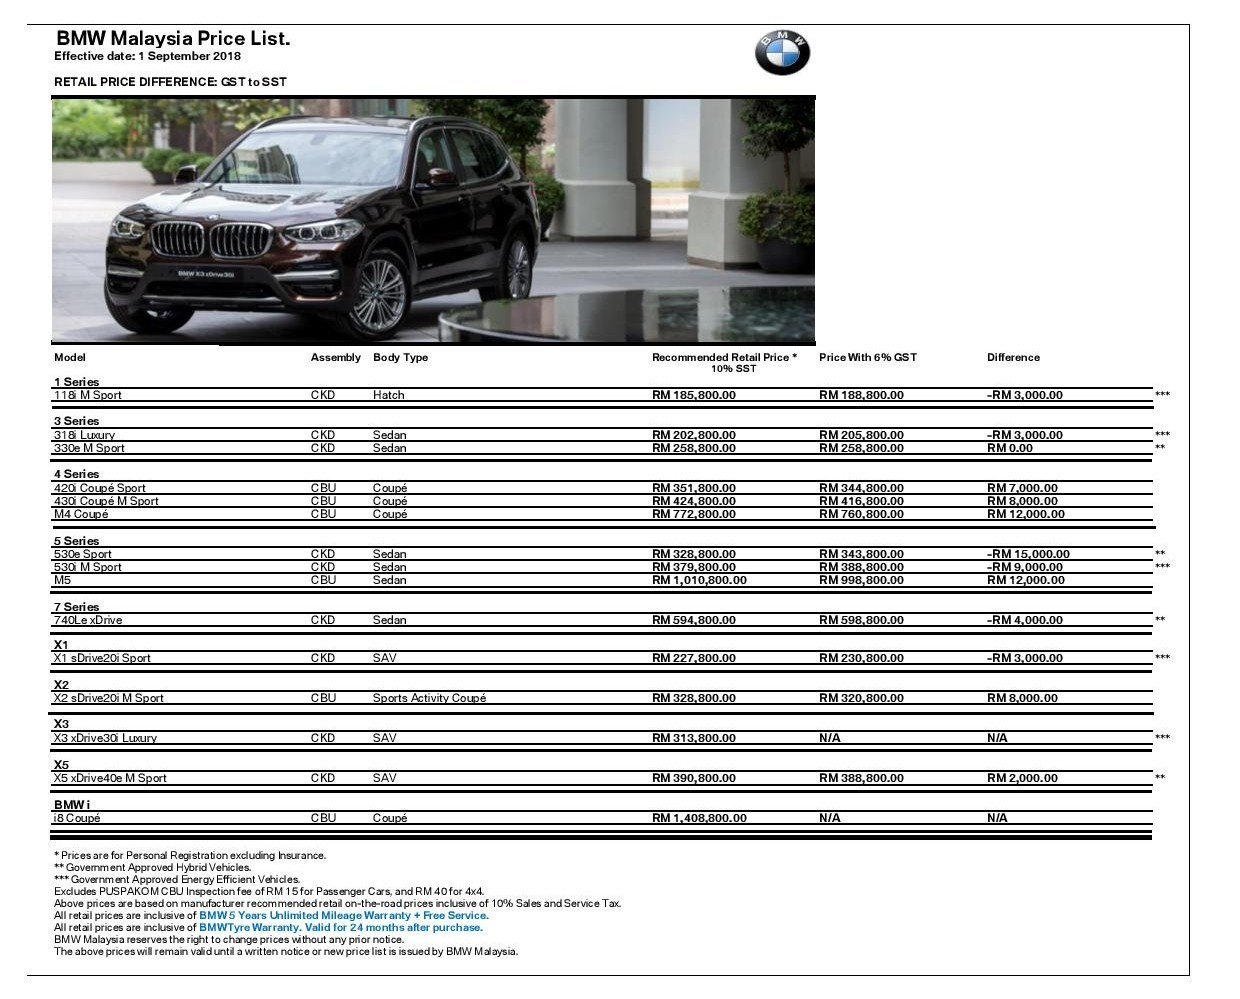 Motoring Malaysia Sst Prices For Bmw Cars Motorrad Mini In